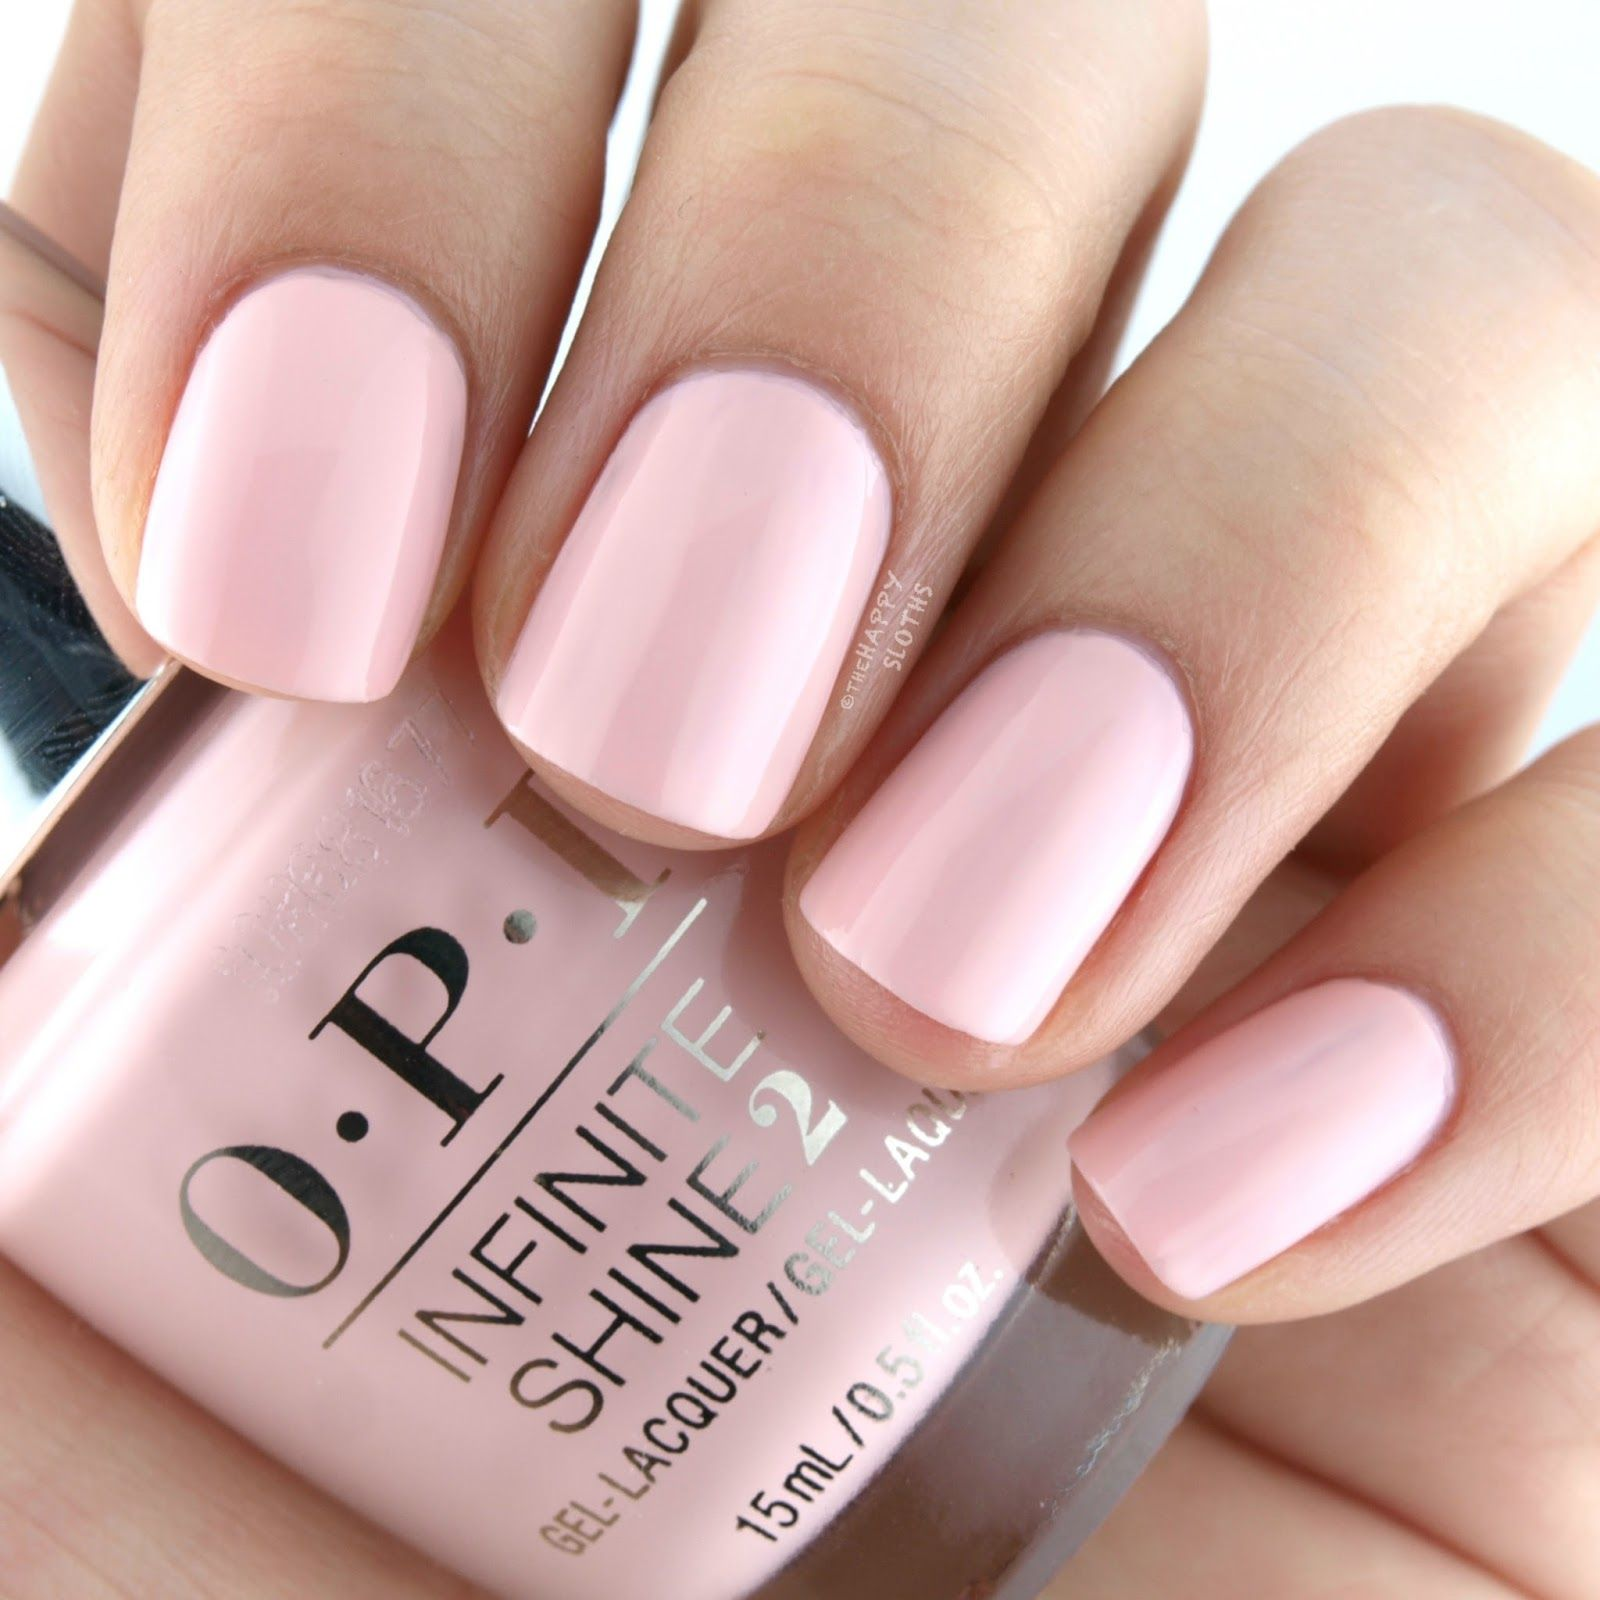 OPI Iconic Infinite Shine Nail Polish